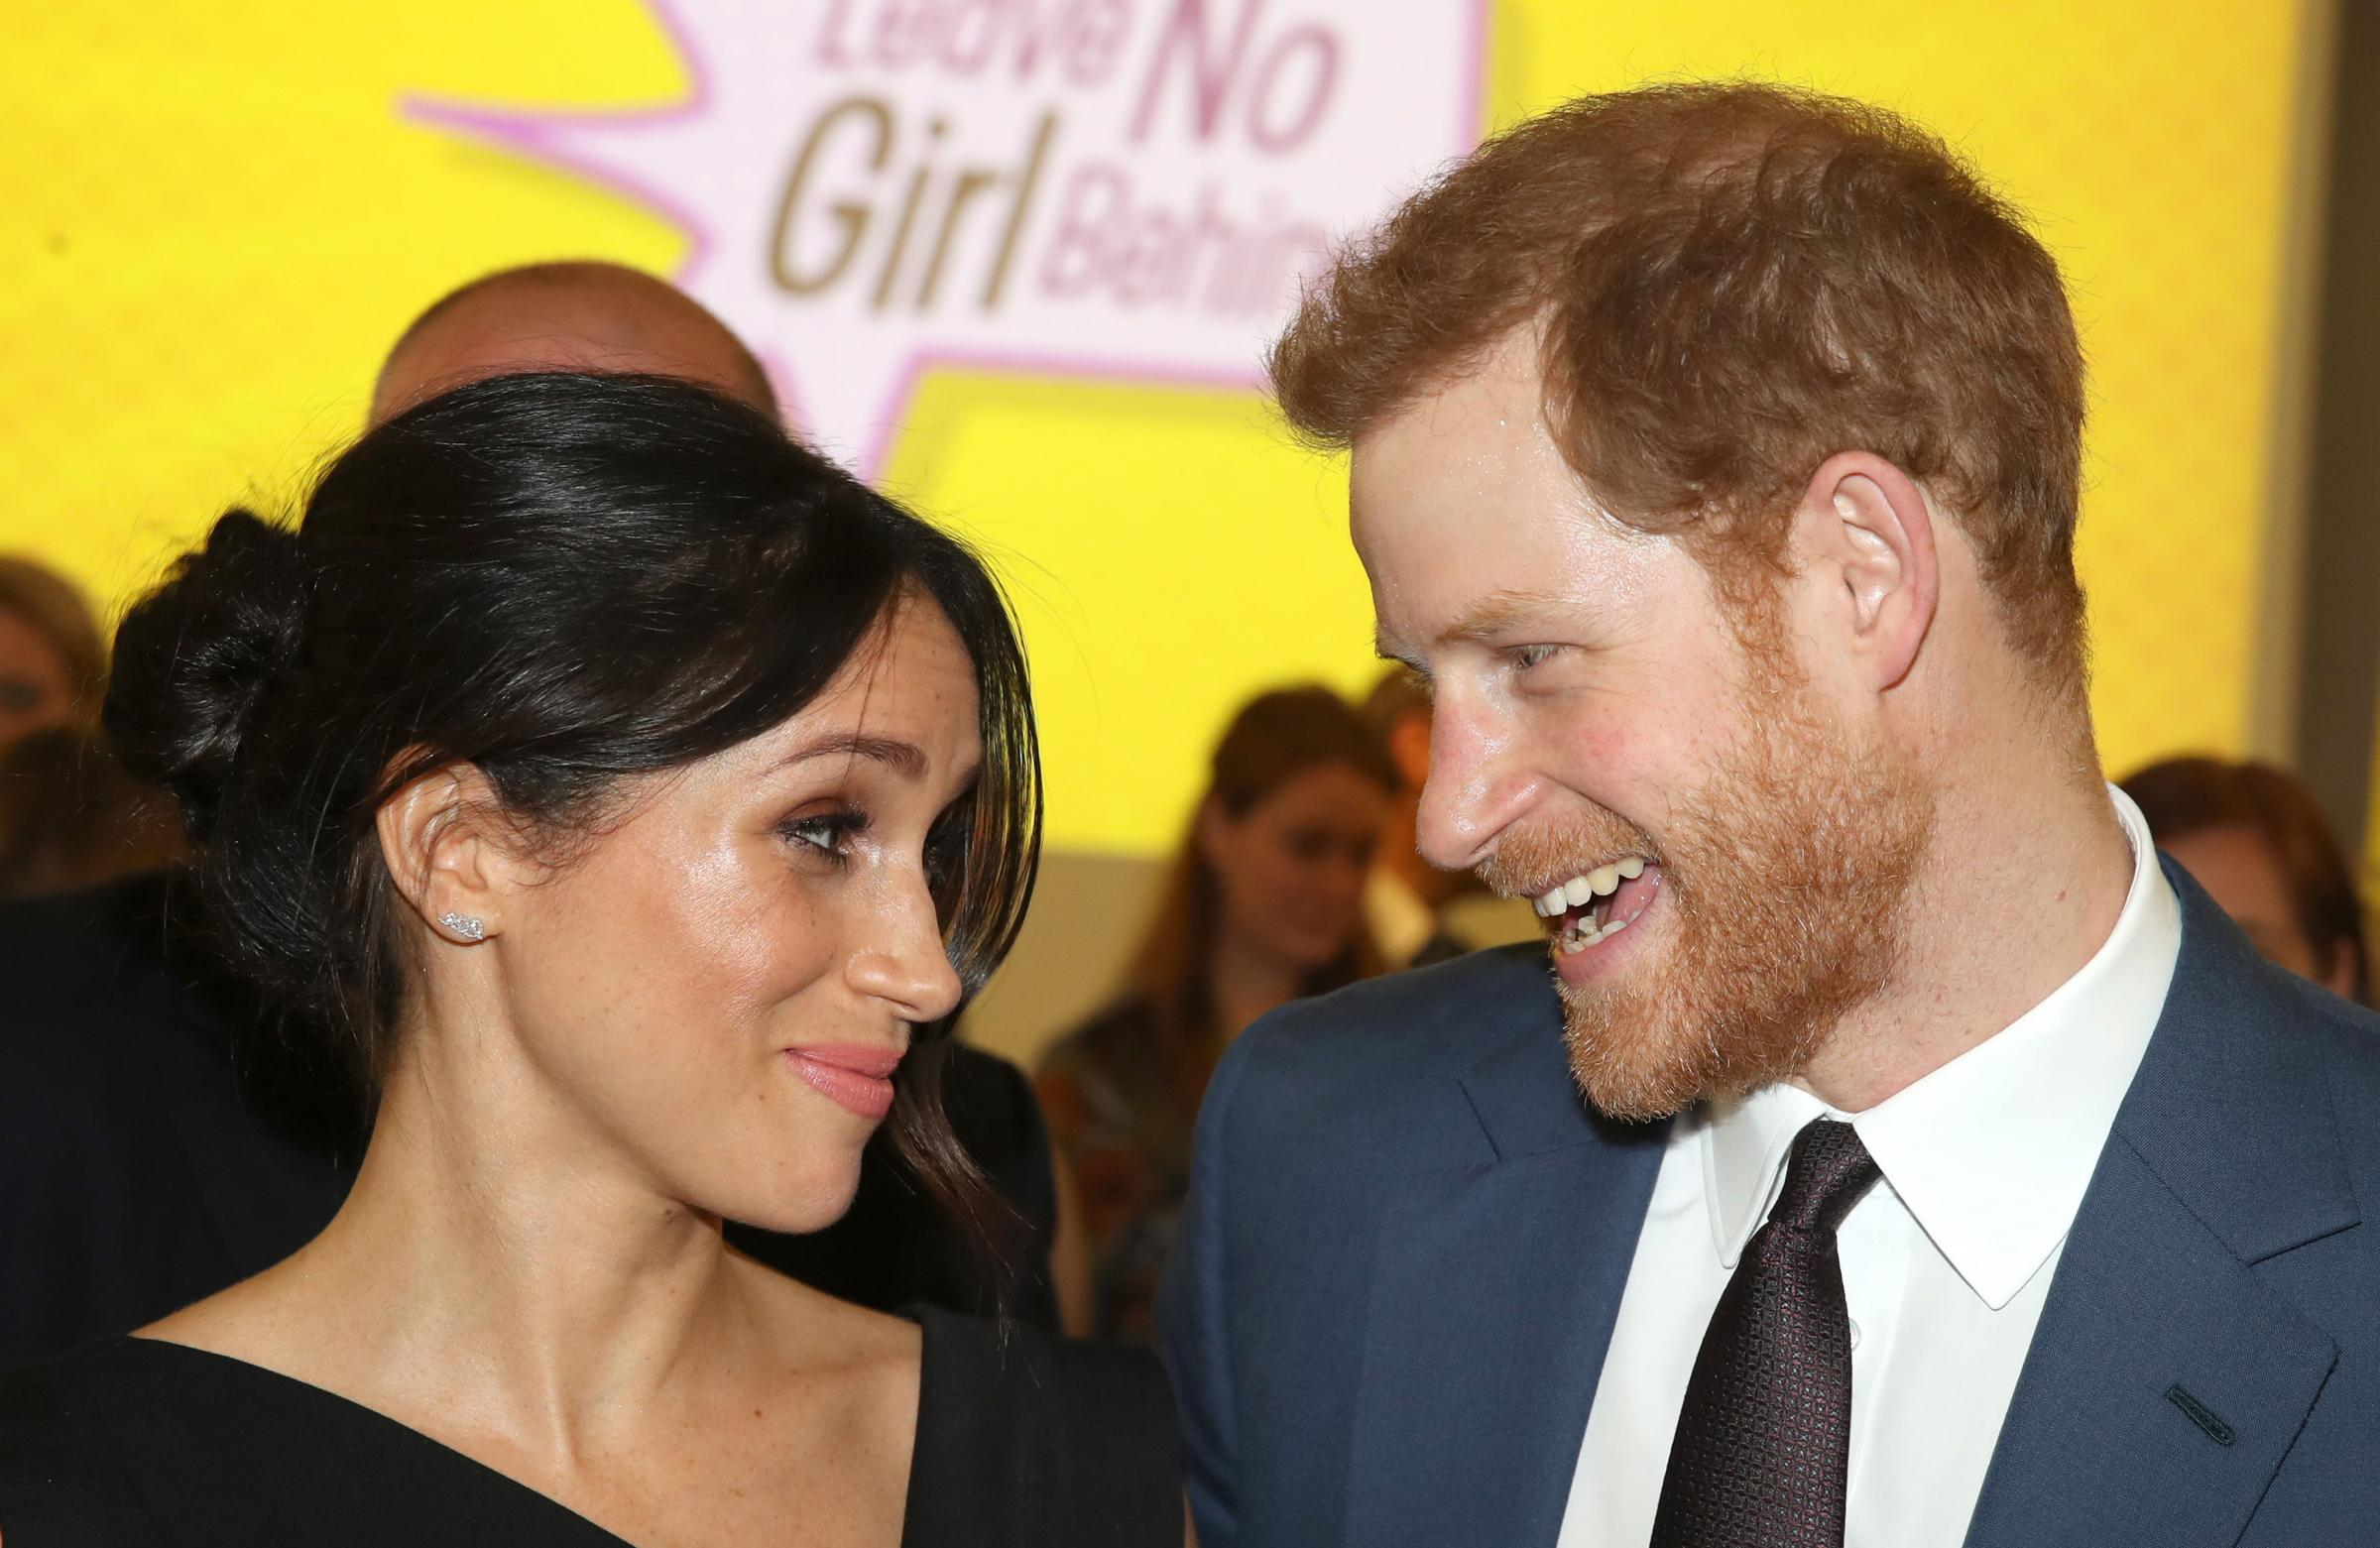 Prince Harry and Meghan Markle attend a women's empowerment reception at the Royal Aeronautical Society in London during the Commonwealth Heads of Government Meeting. PRESS ASSOCIATION Photo. Picture date: Thursday April 19, 2018. See